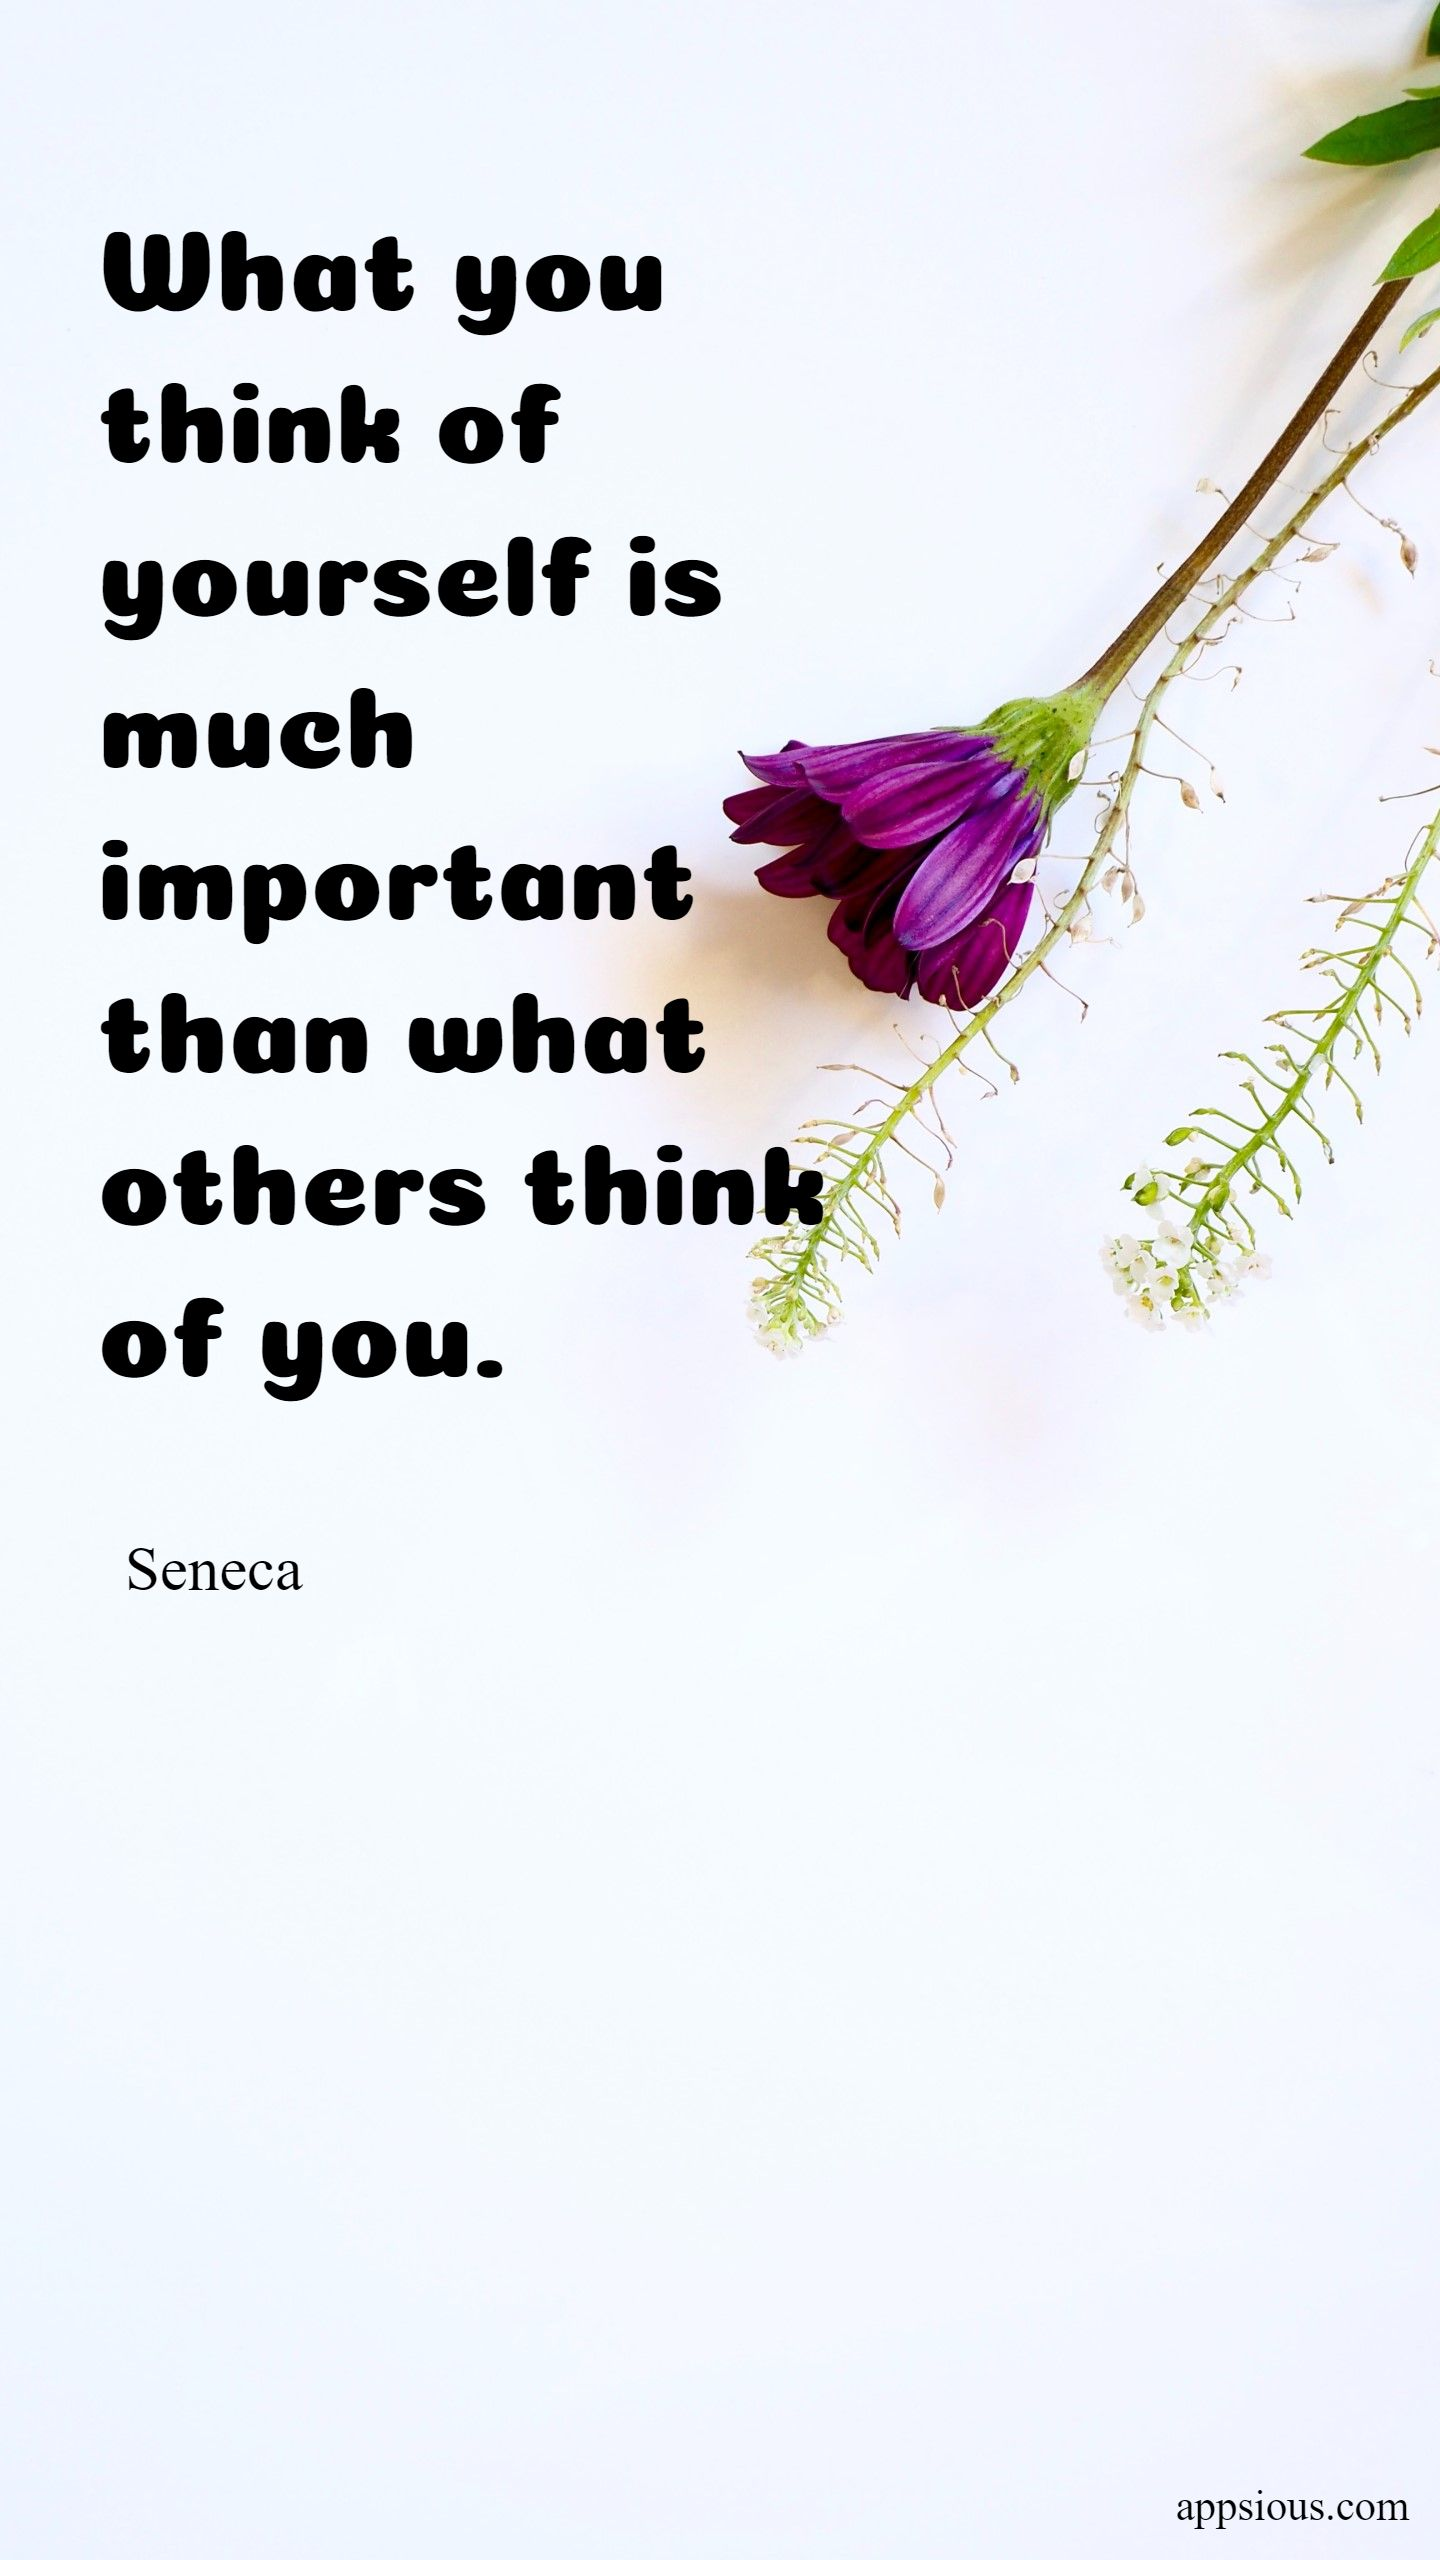 What you think of yourself is much more important than what others think of you.